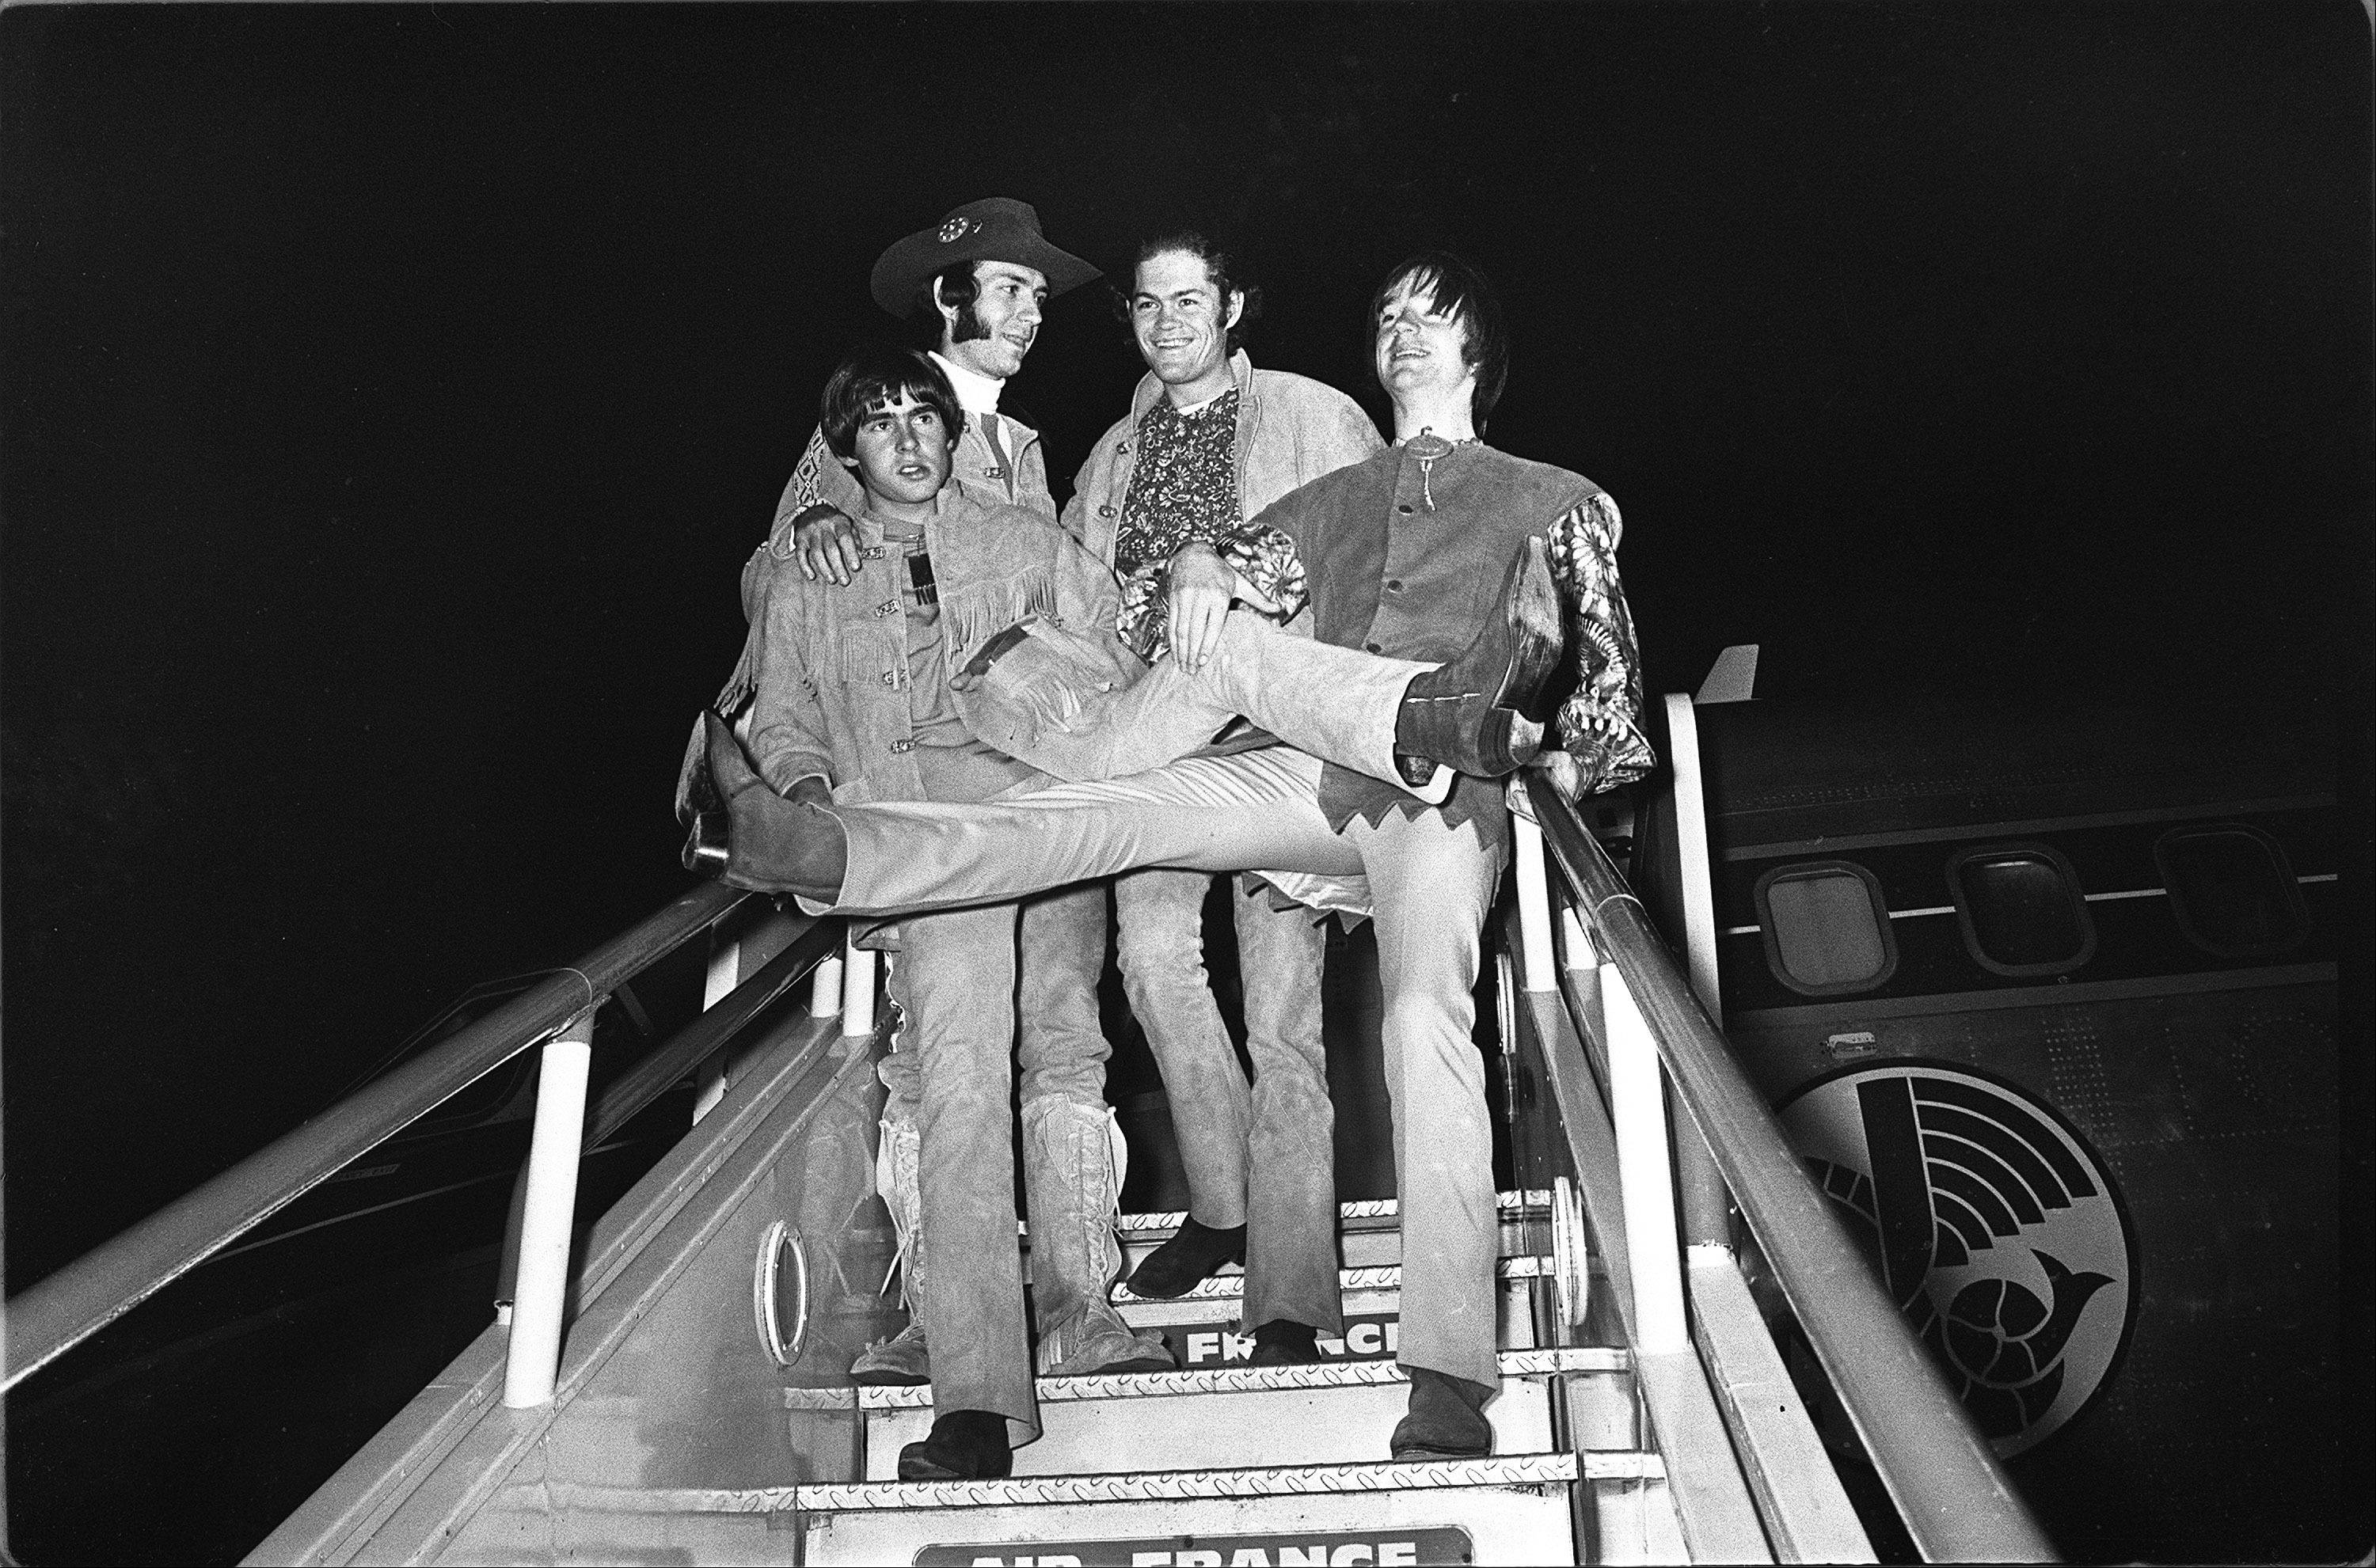 American pop group, the Monkees, pictured on arrival at London Airport, 28th June, 1967. Arriving from Paris, the group will perform a live stage show at the Empire Pool, Wembley, this coming weekend. Left to right are Davy Jones, Peter Tork, Micky Dolenz and Mike Nesmith.